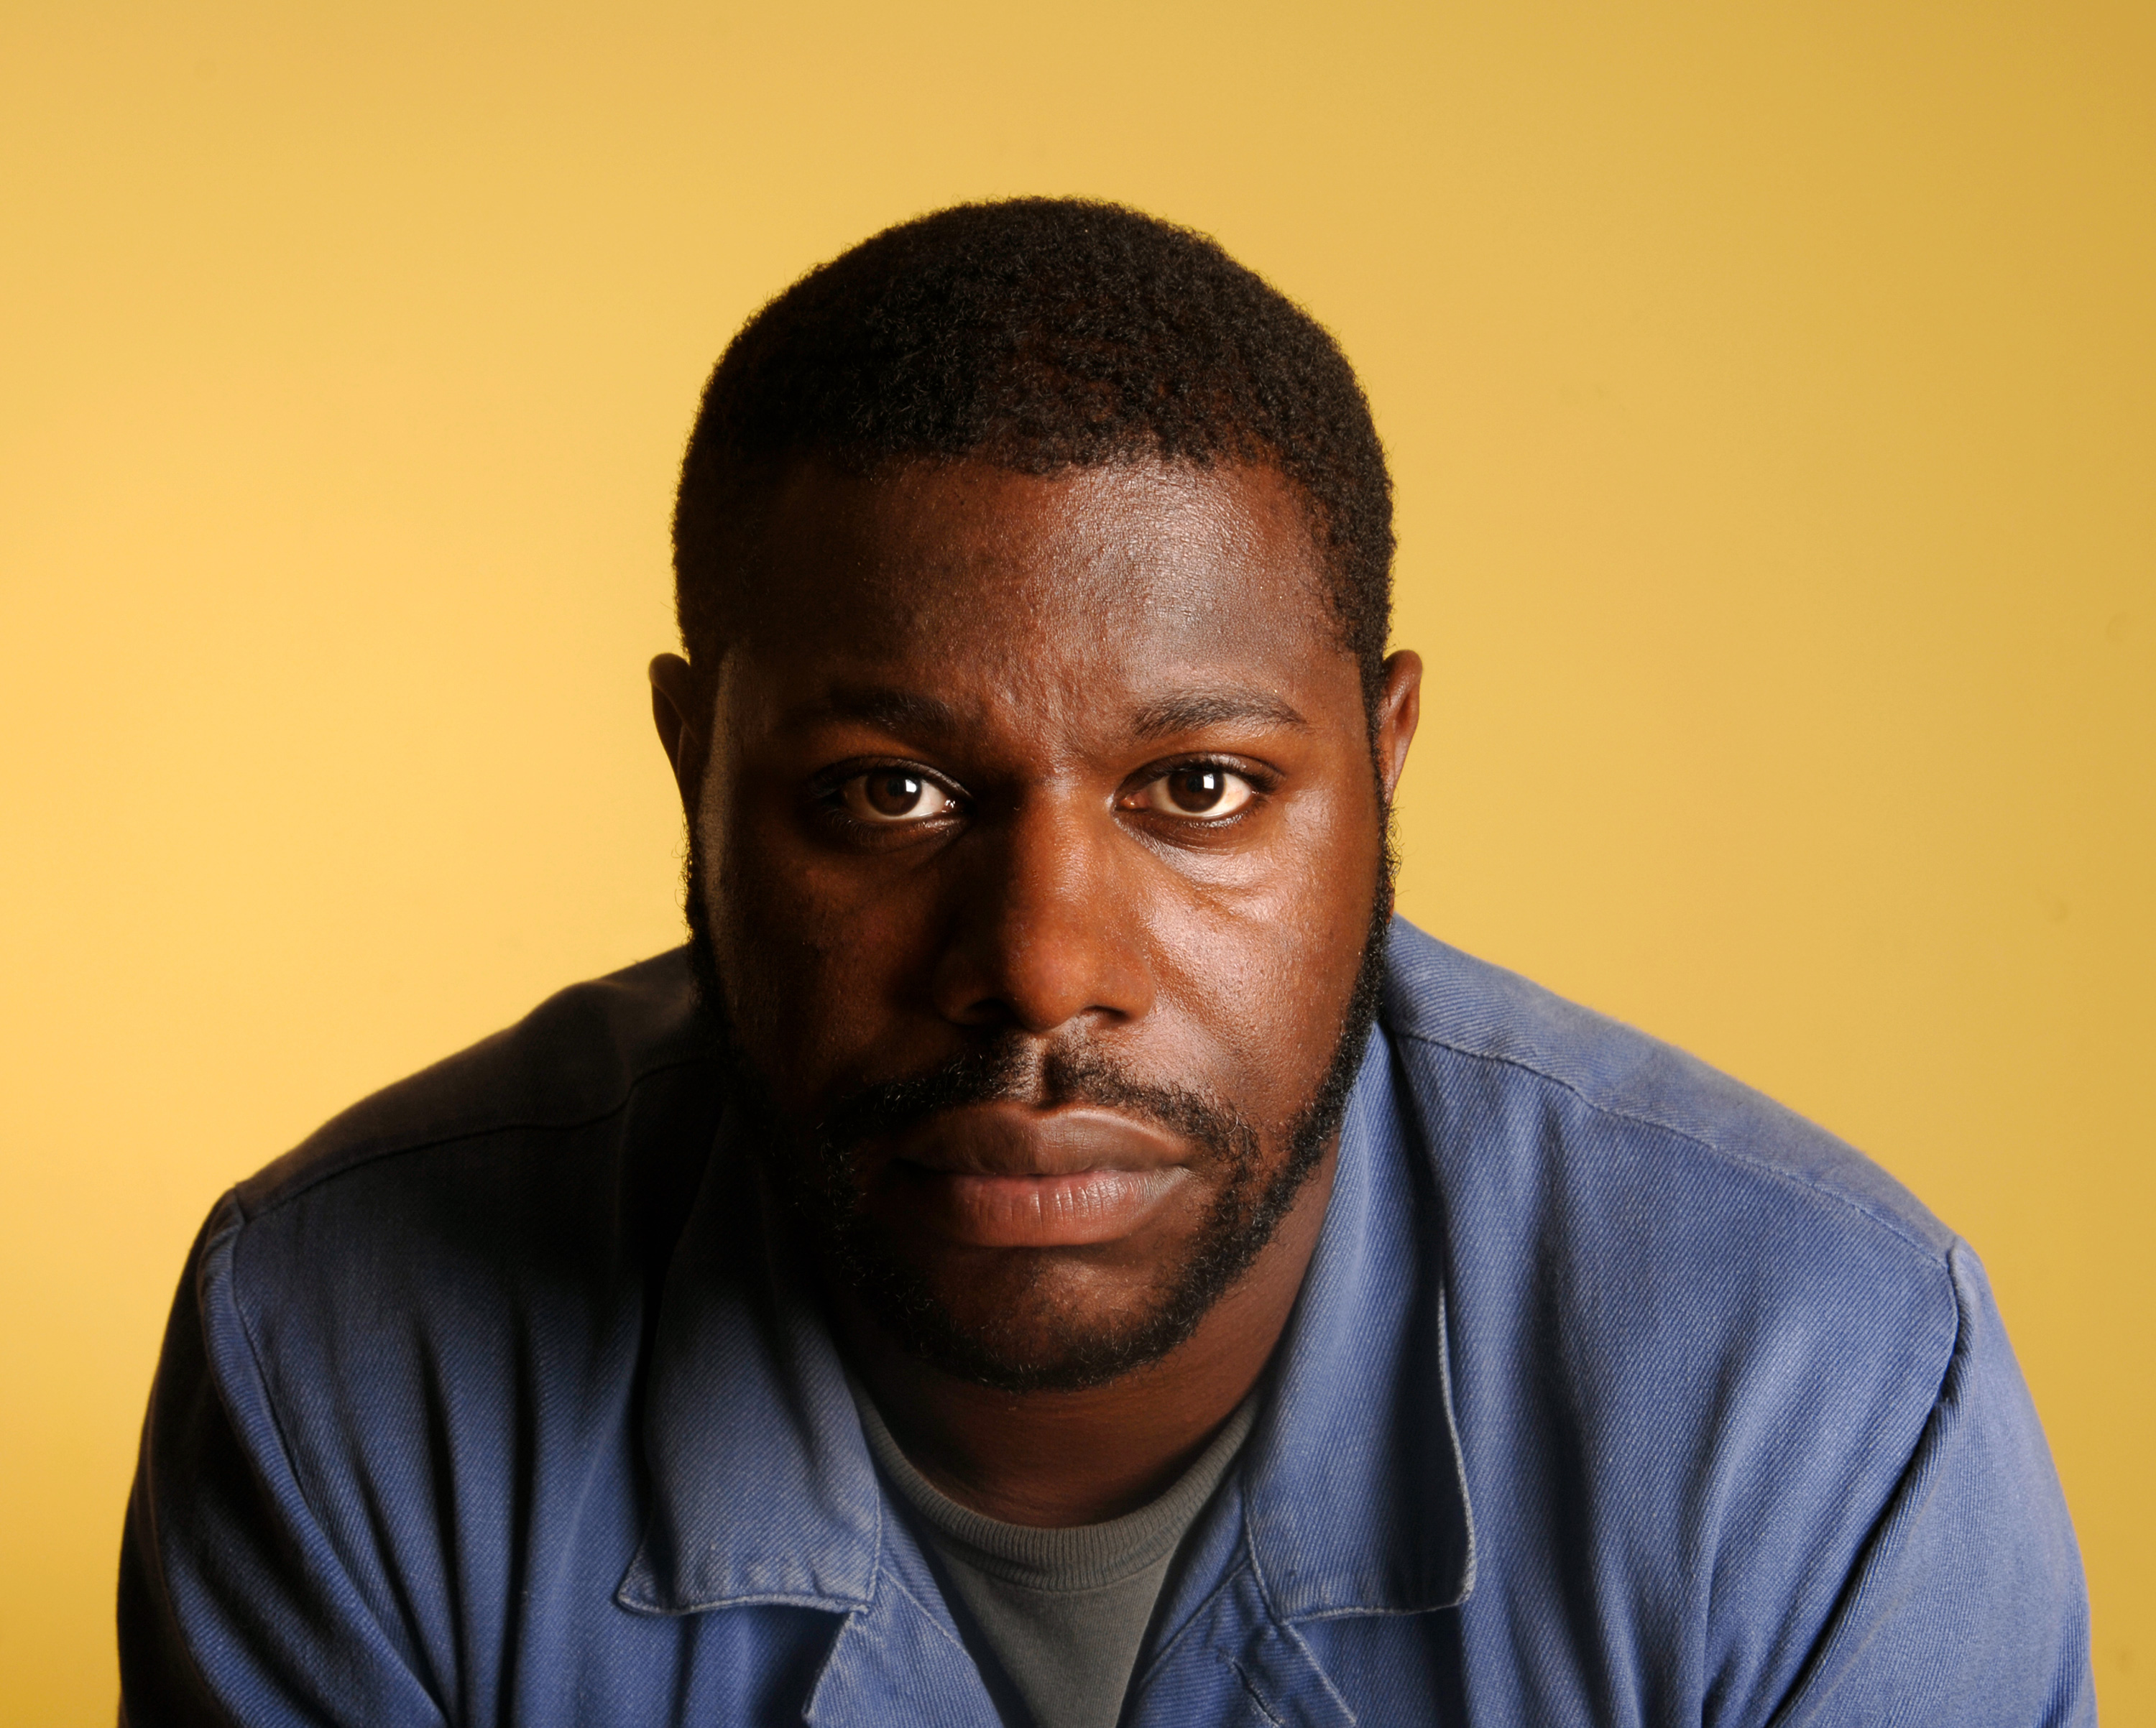 A live online discussion with Steve McQueen